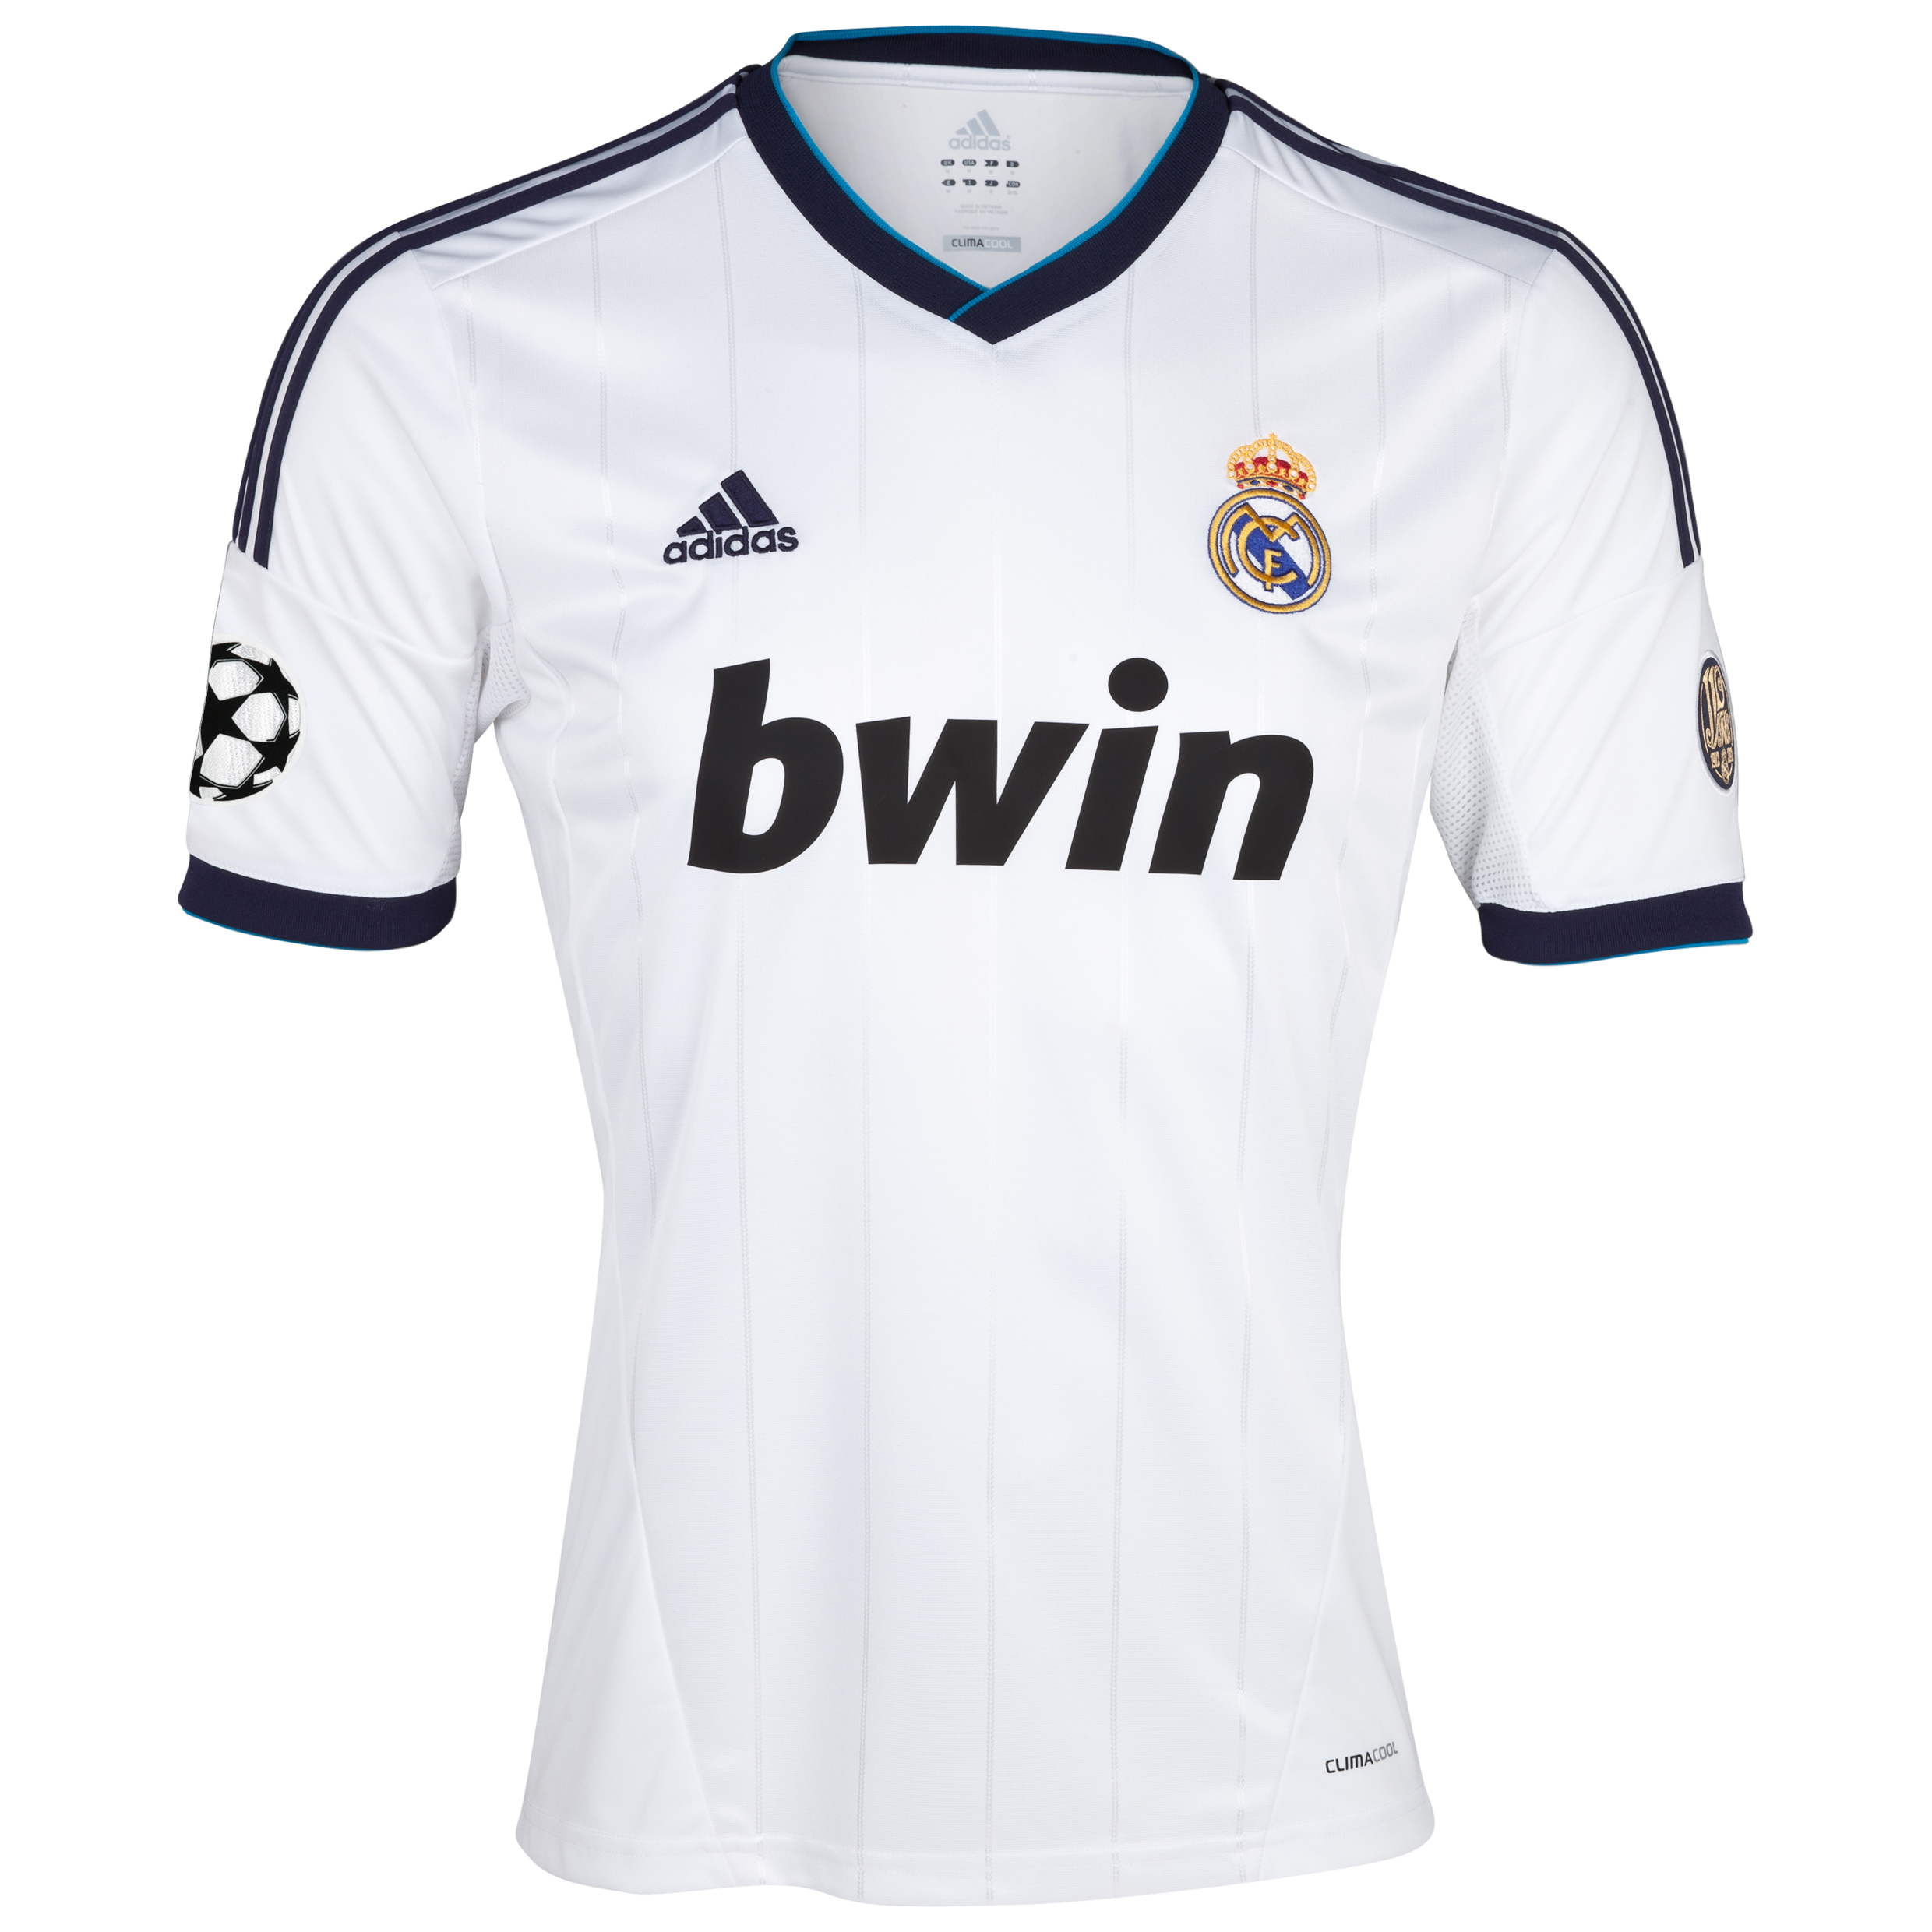 Real Madrid UEFA Champions League Home Shirt 2012/13